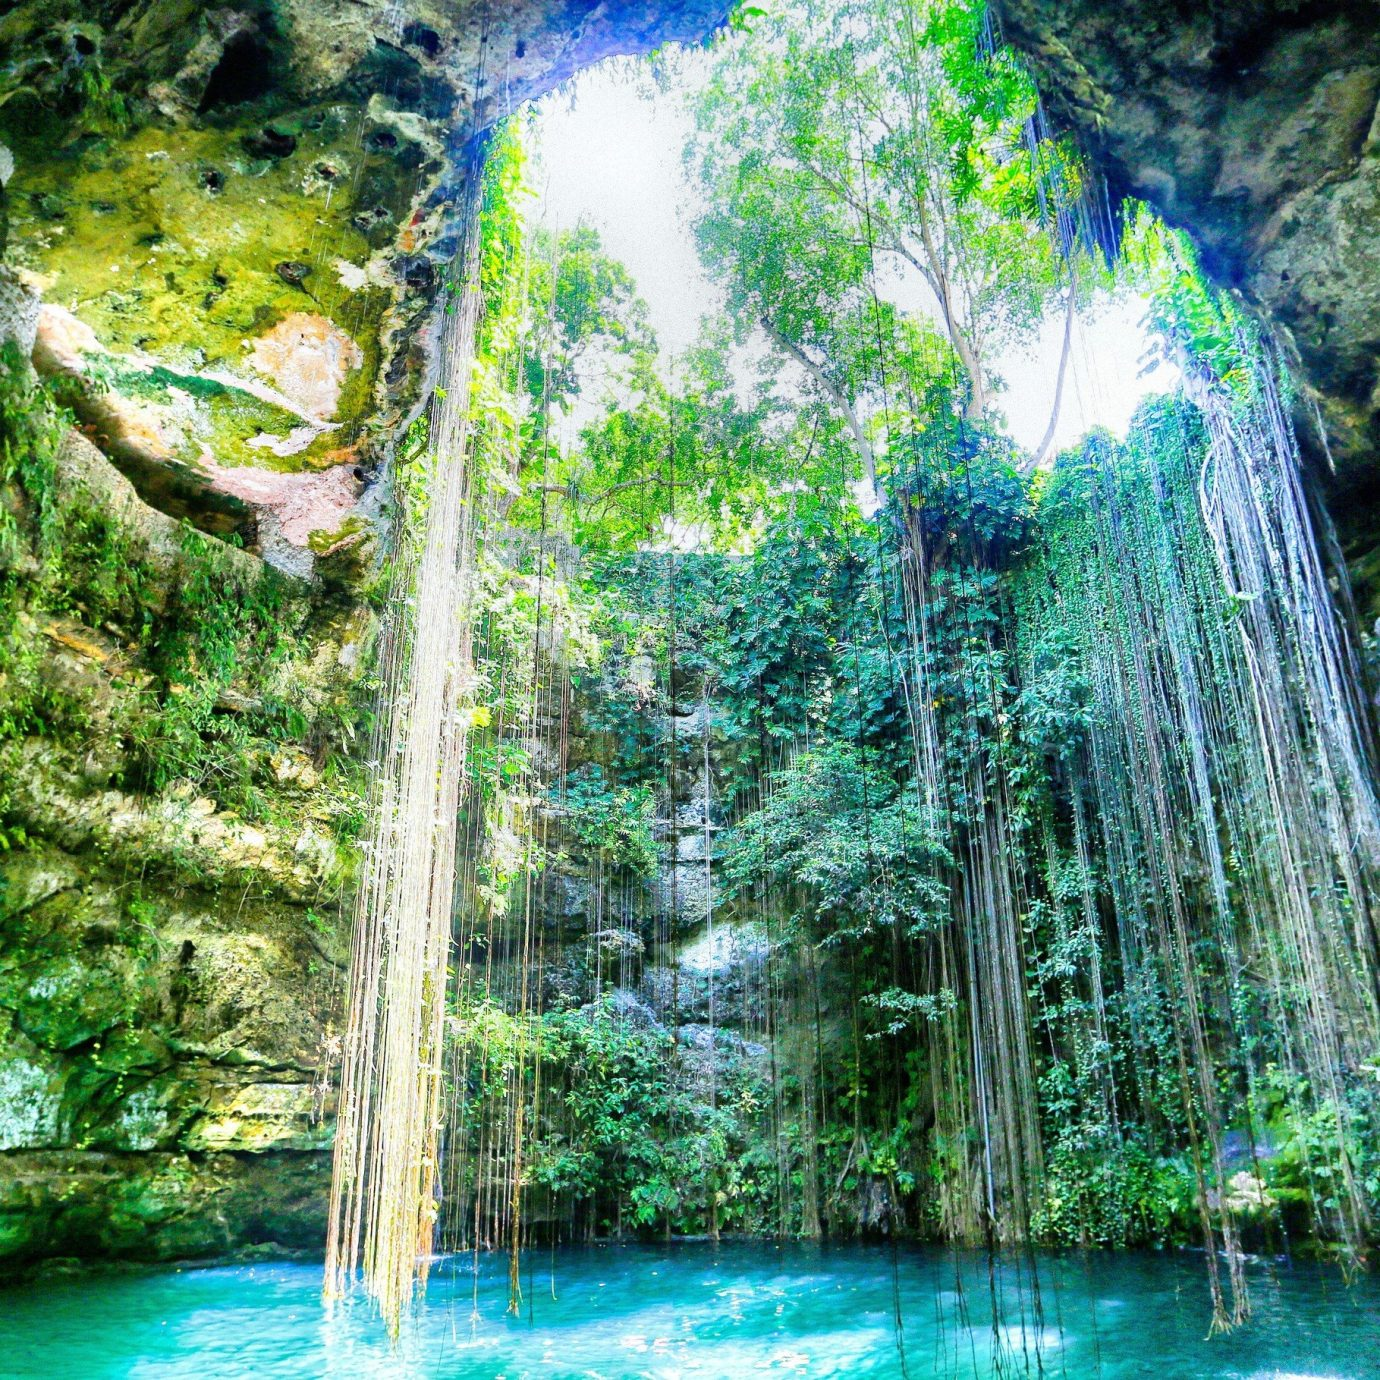 Outdoors + Adventure tree water habitat Waterfall outdoor Nature body of water green natural environment River Forest botany rainforest water feature Jungle reflection woodland tropics surrounded